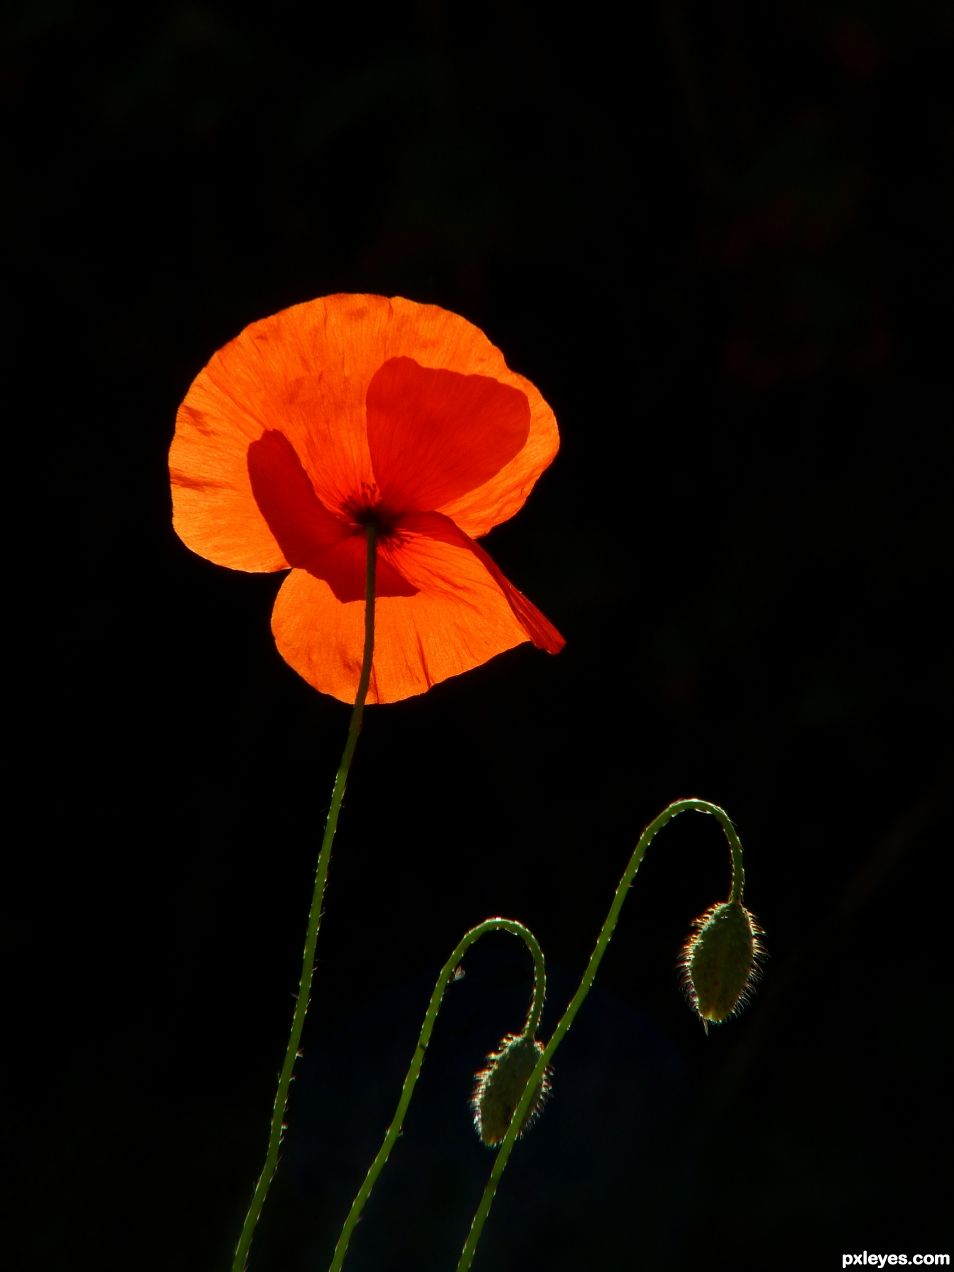 Backlight and poppies